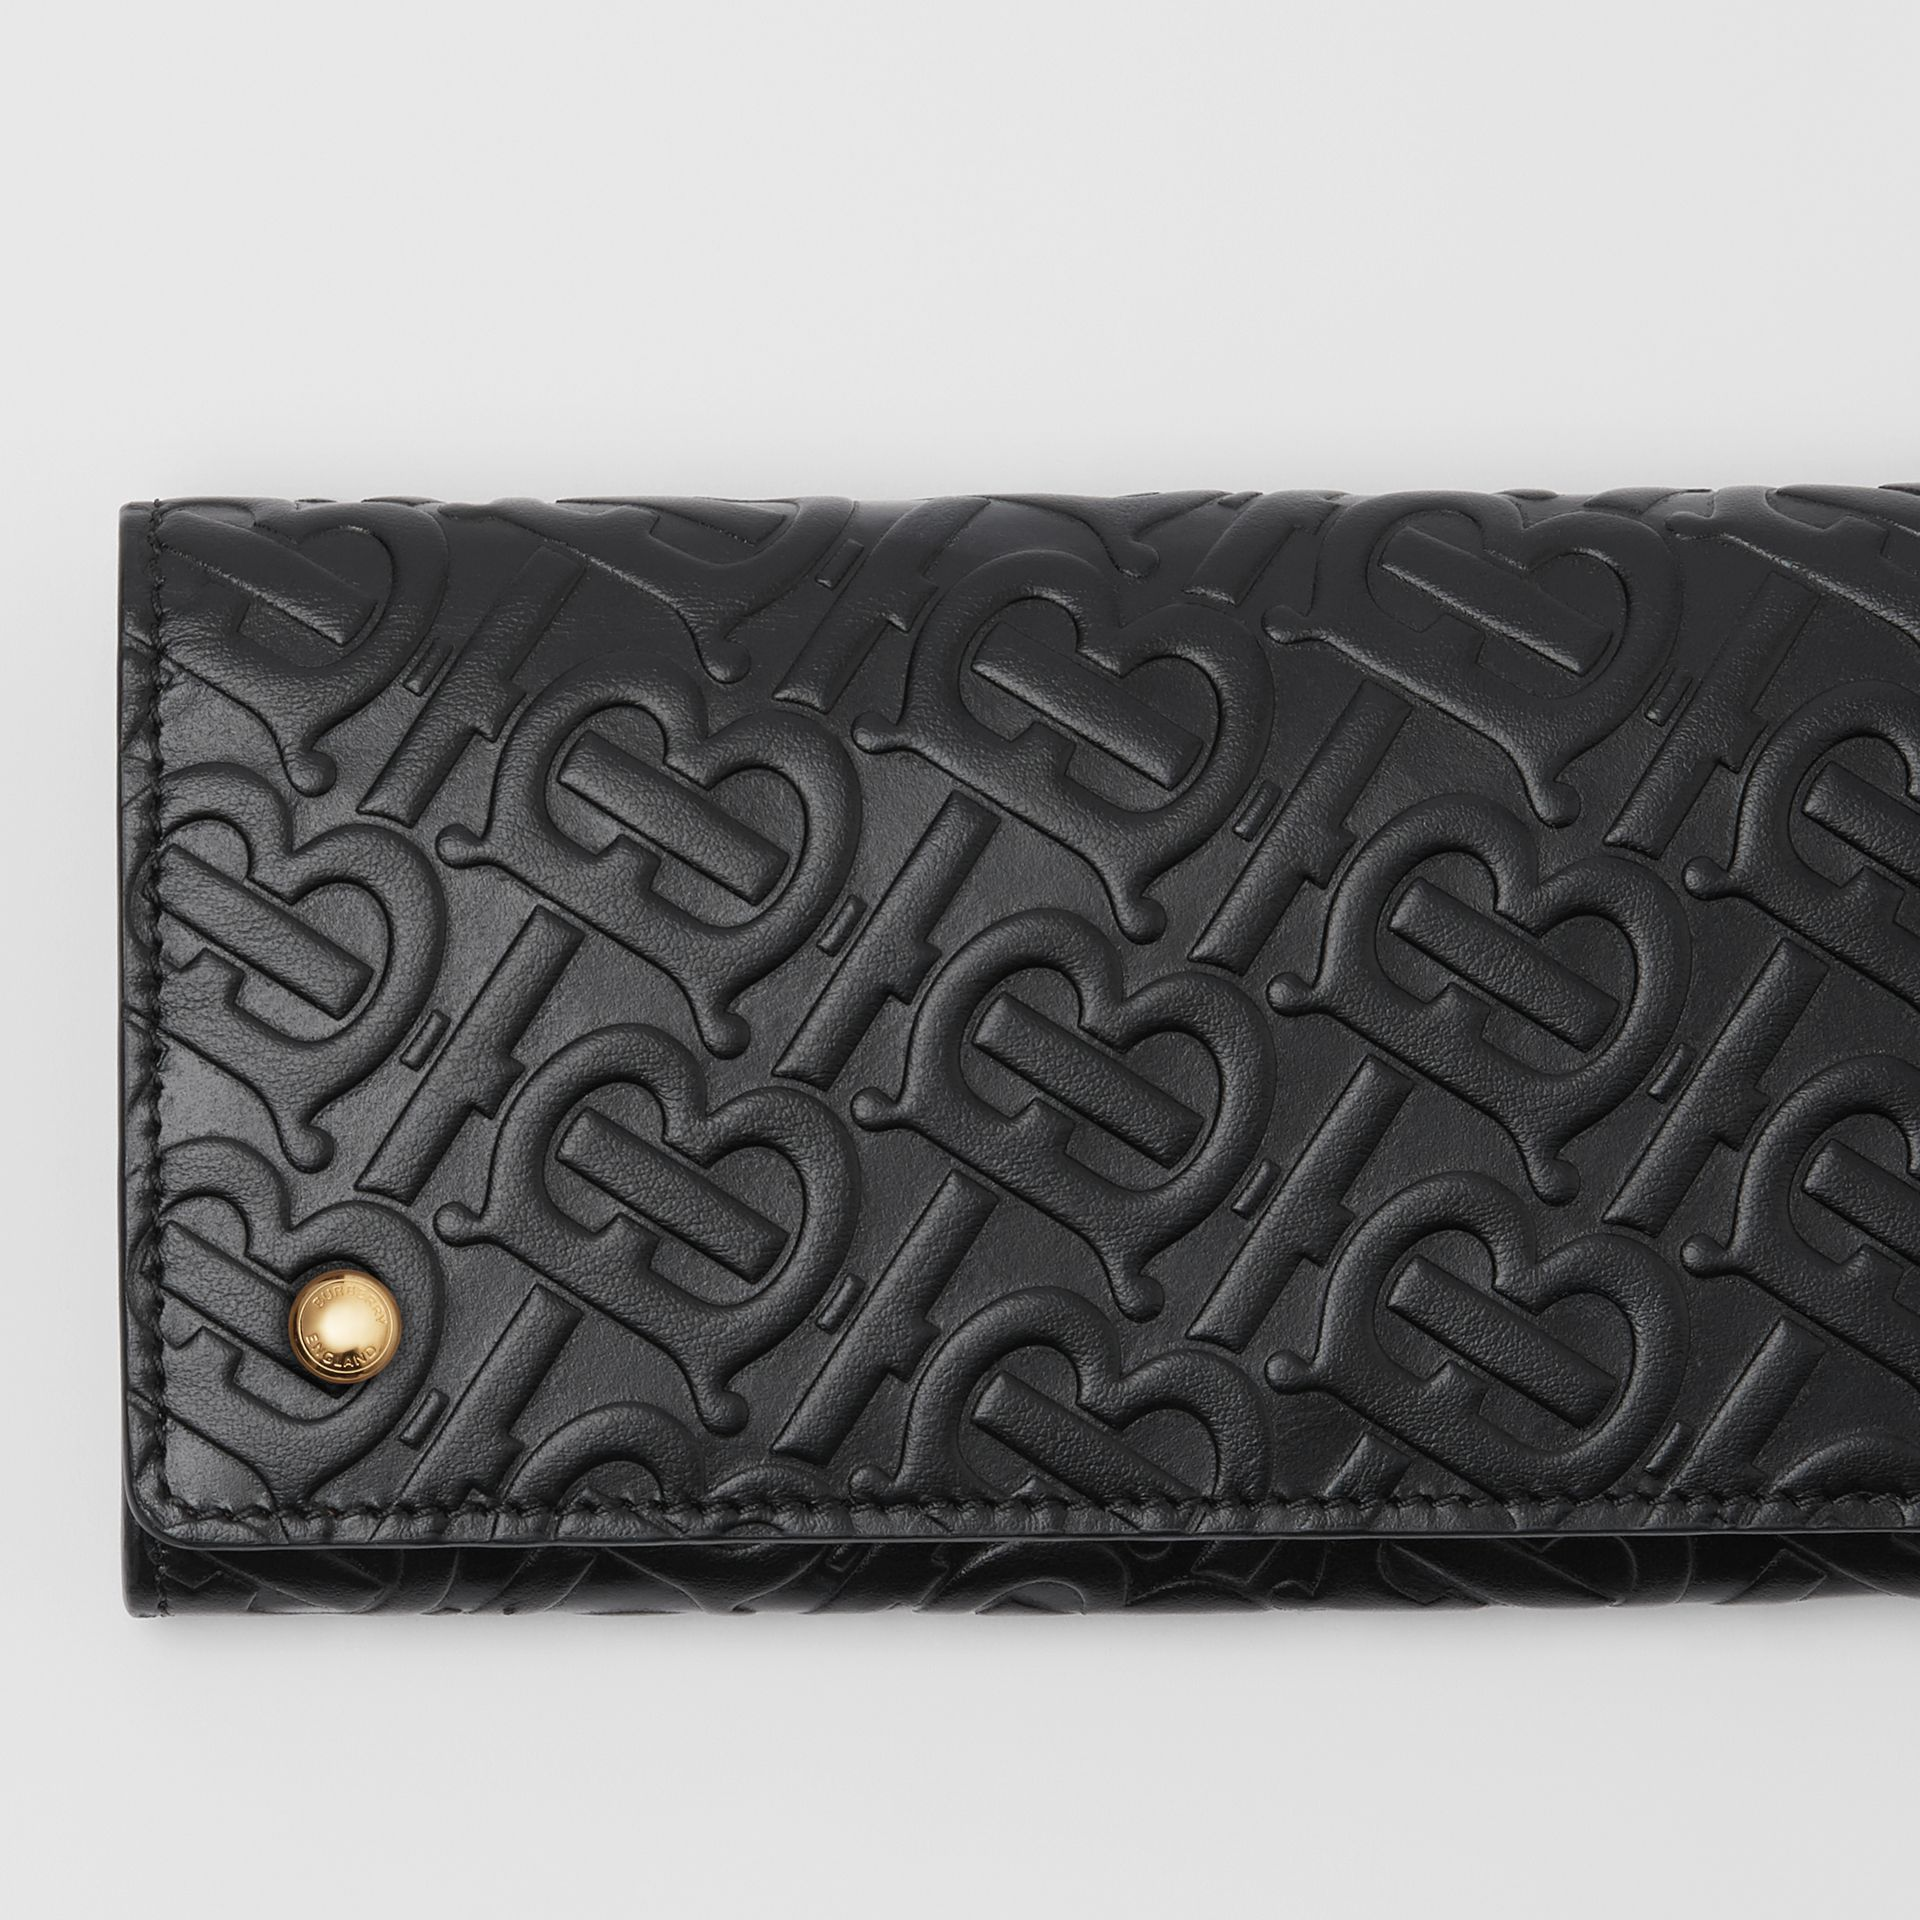 Monogram Leather Continental Wallet in Black - Women | Burberry United States - gallery image 1